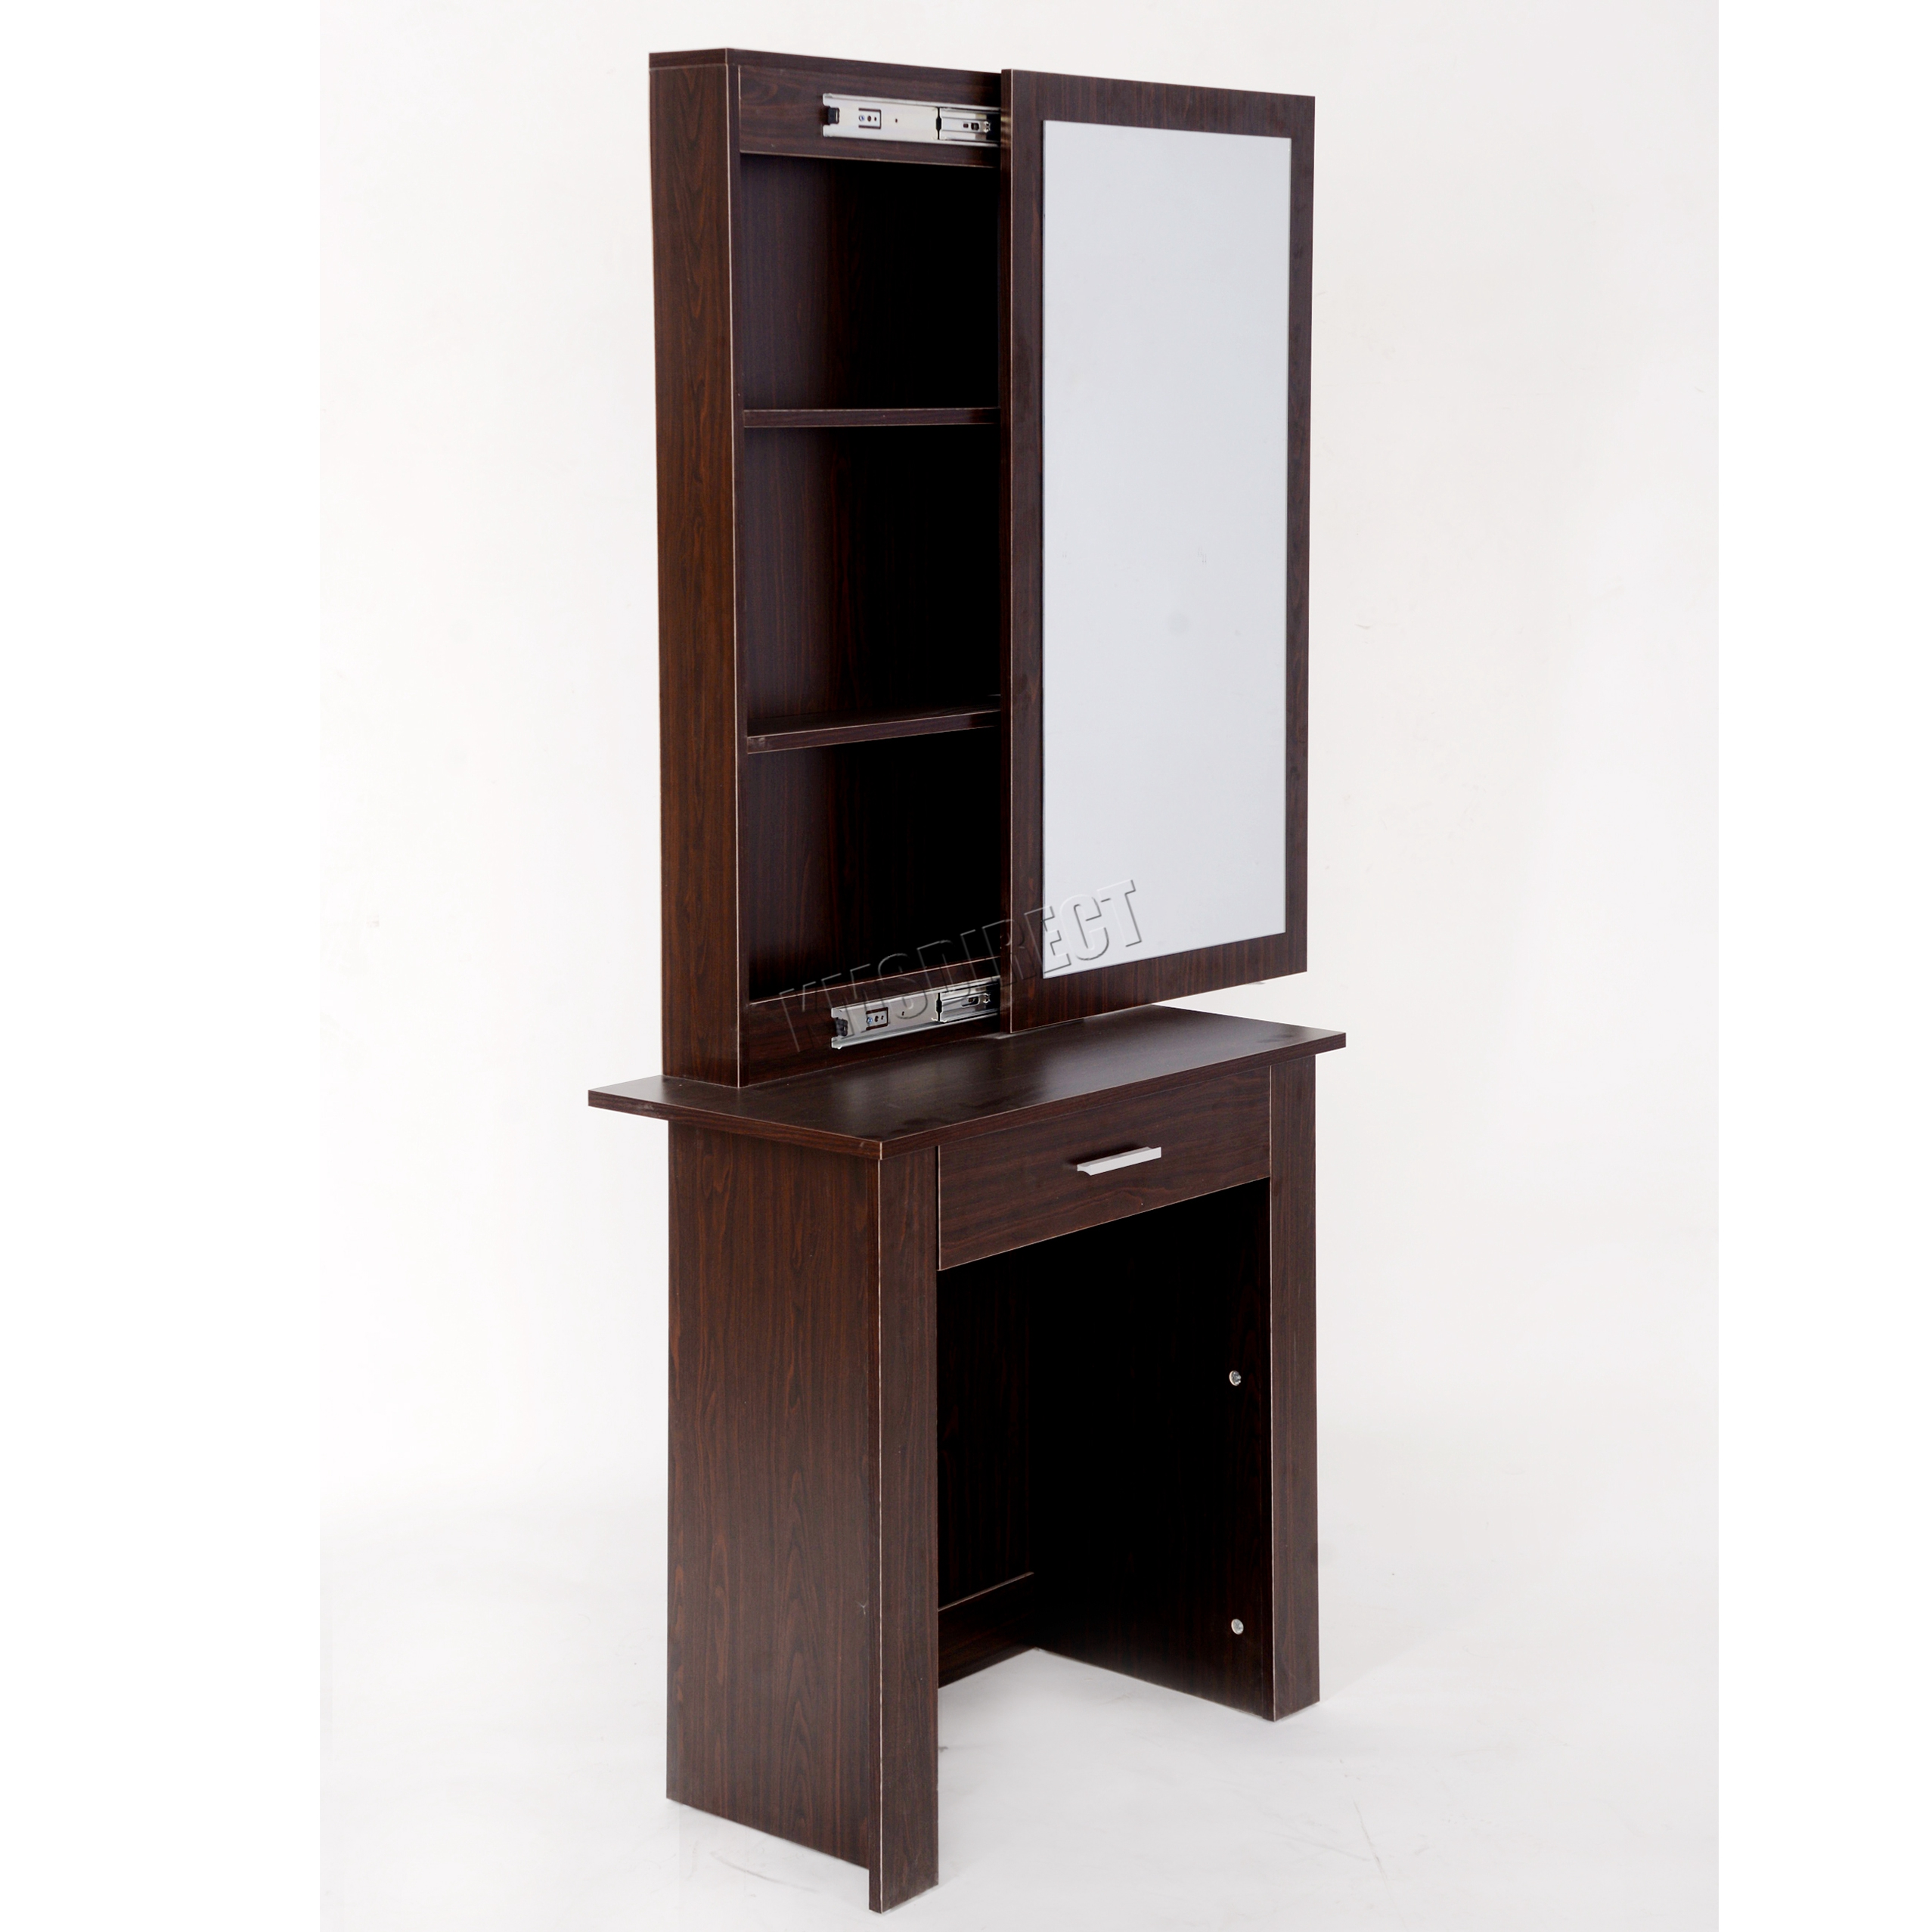 Best Dressing Table Westwood Wooden Makeup Jewelry Dressing Table With Sliding